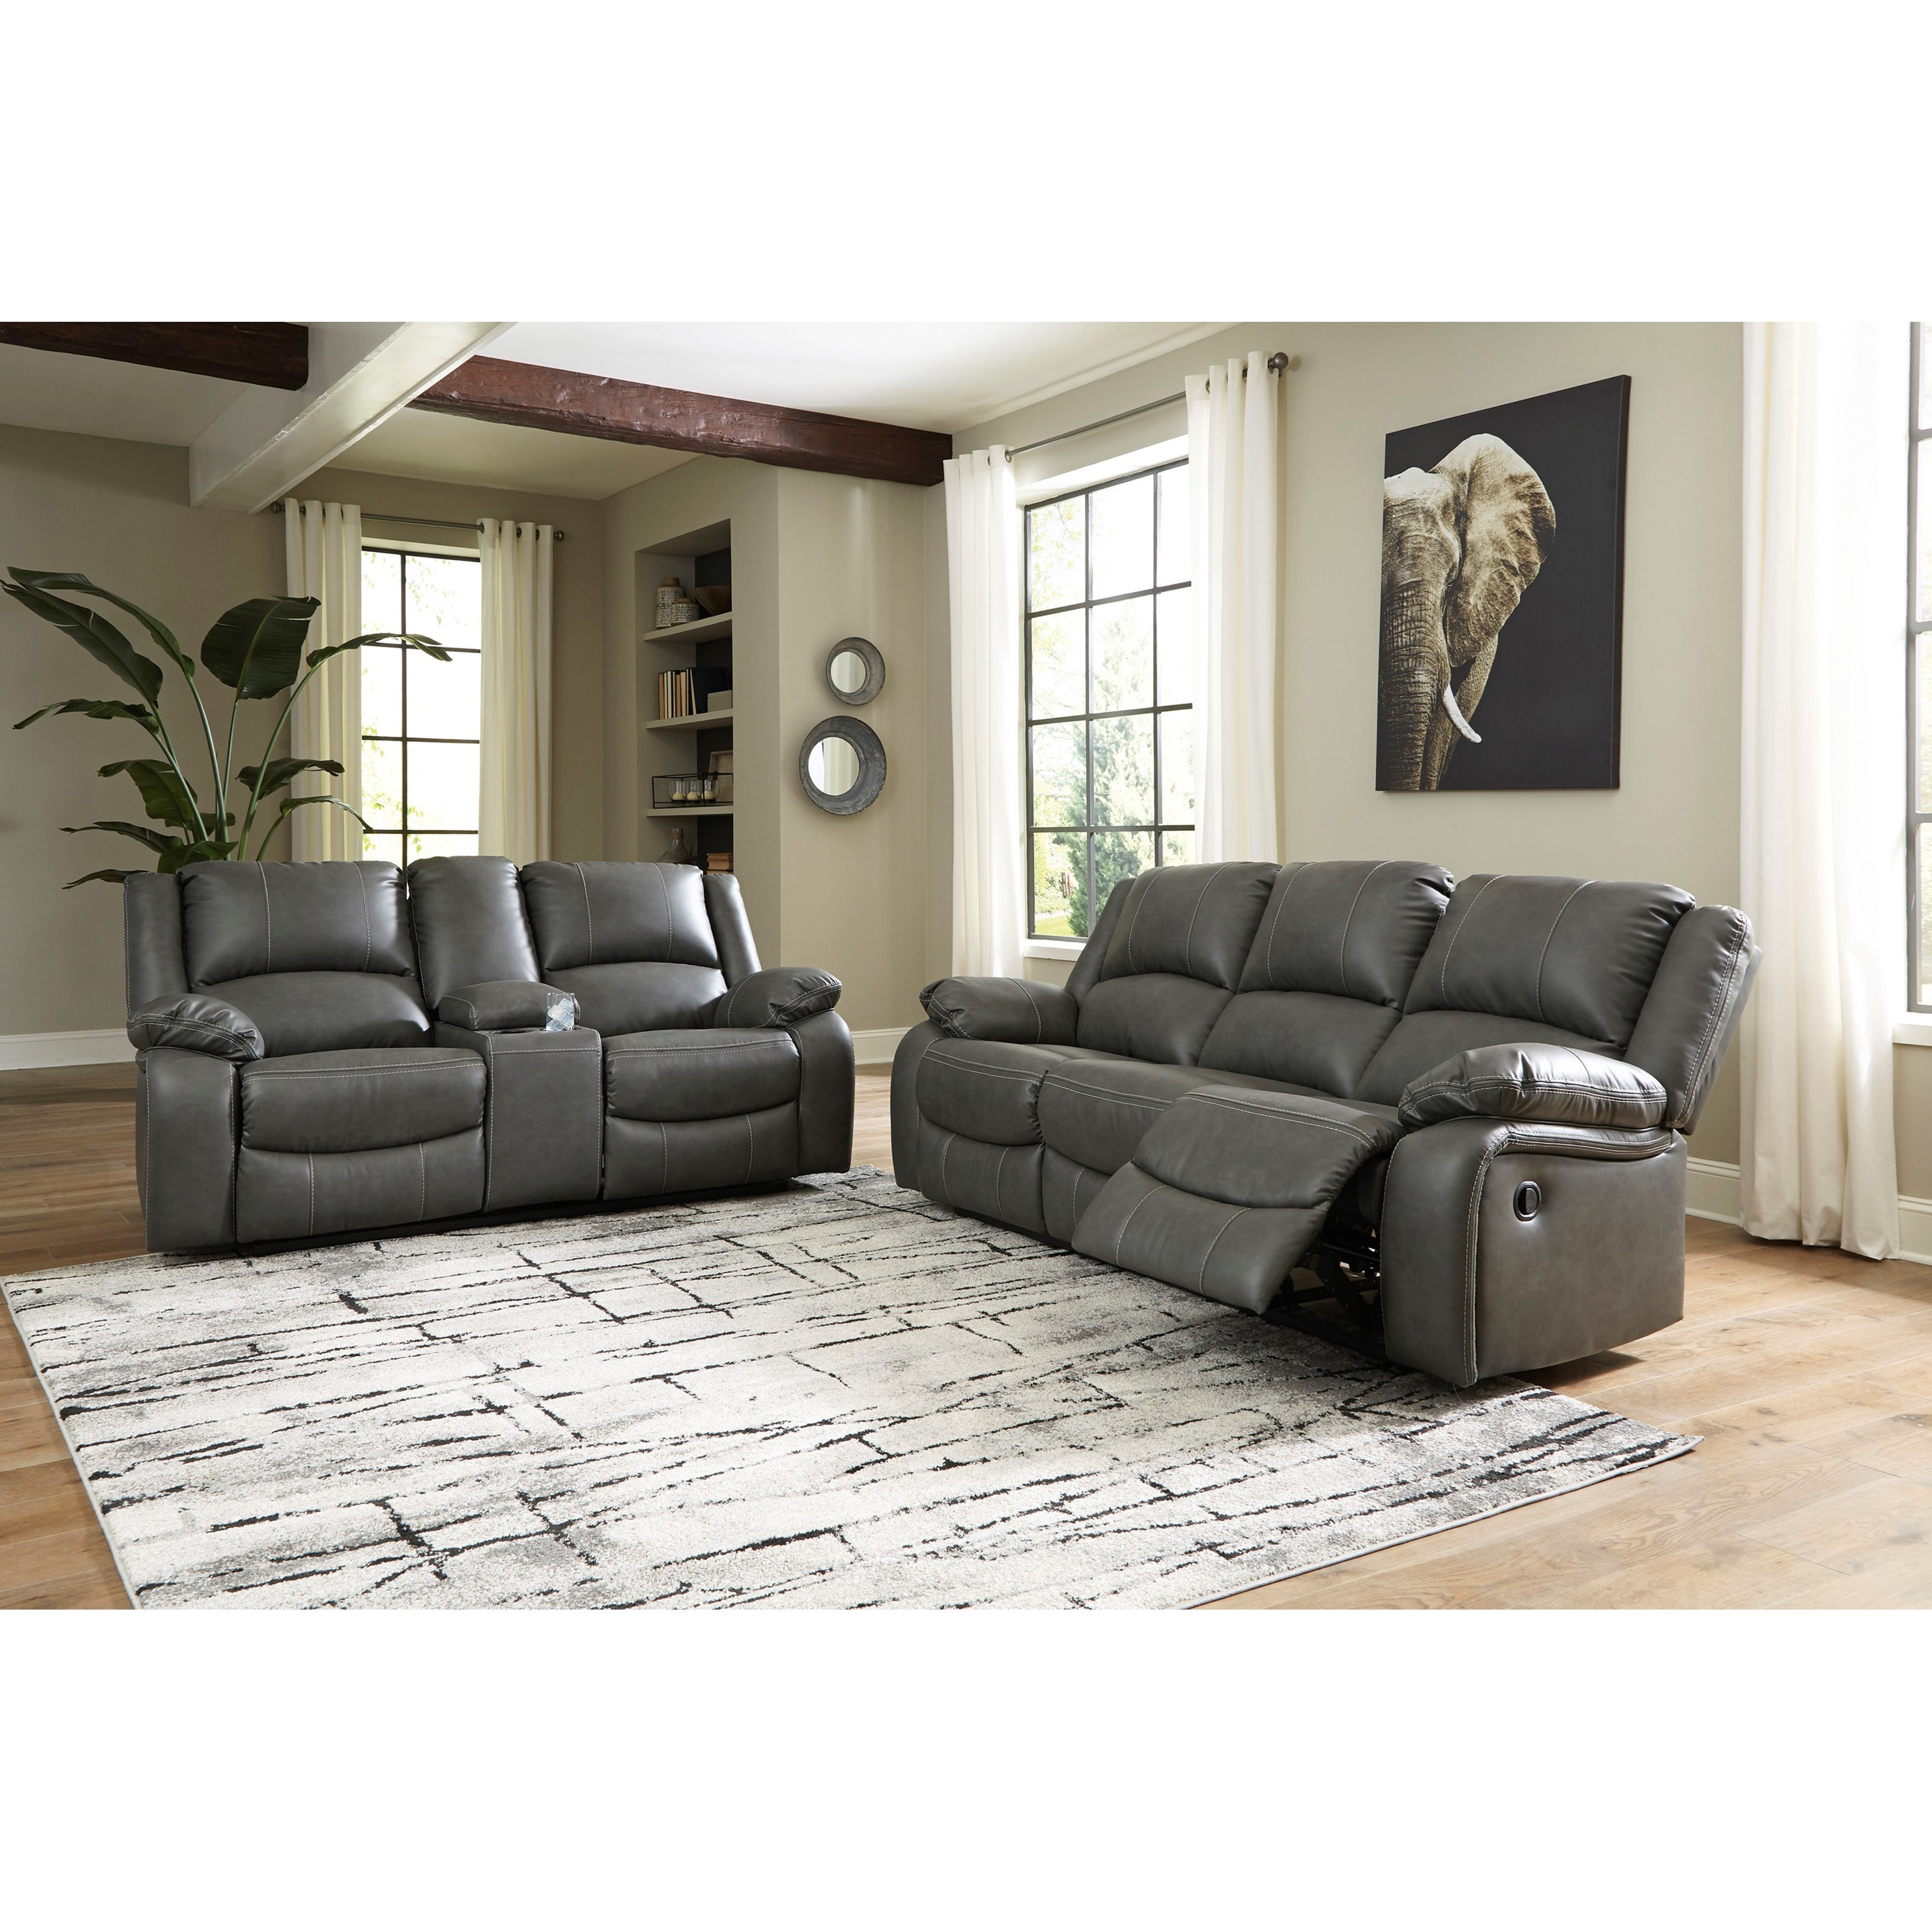 Calderwell Reclining Living Room Group by Ashley (Signature Design) at Johnny Janosik